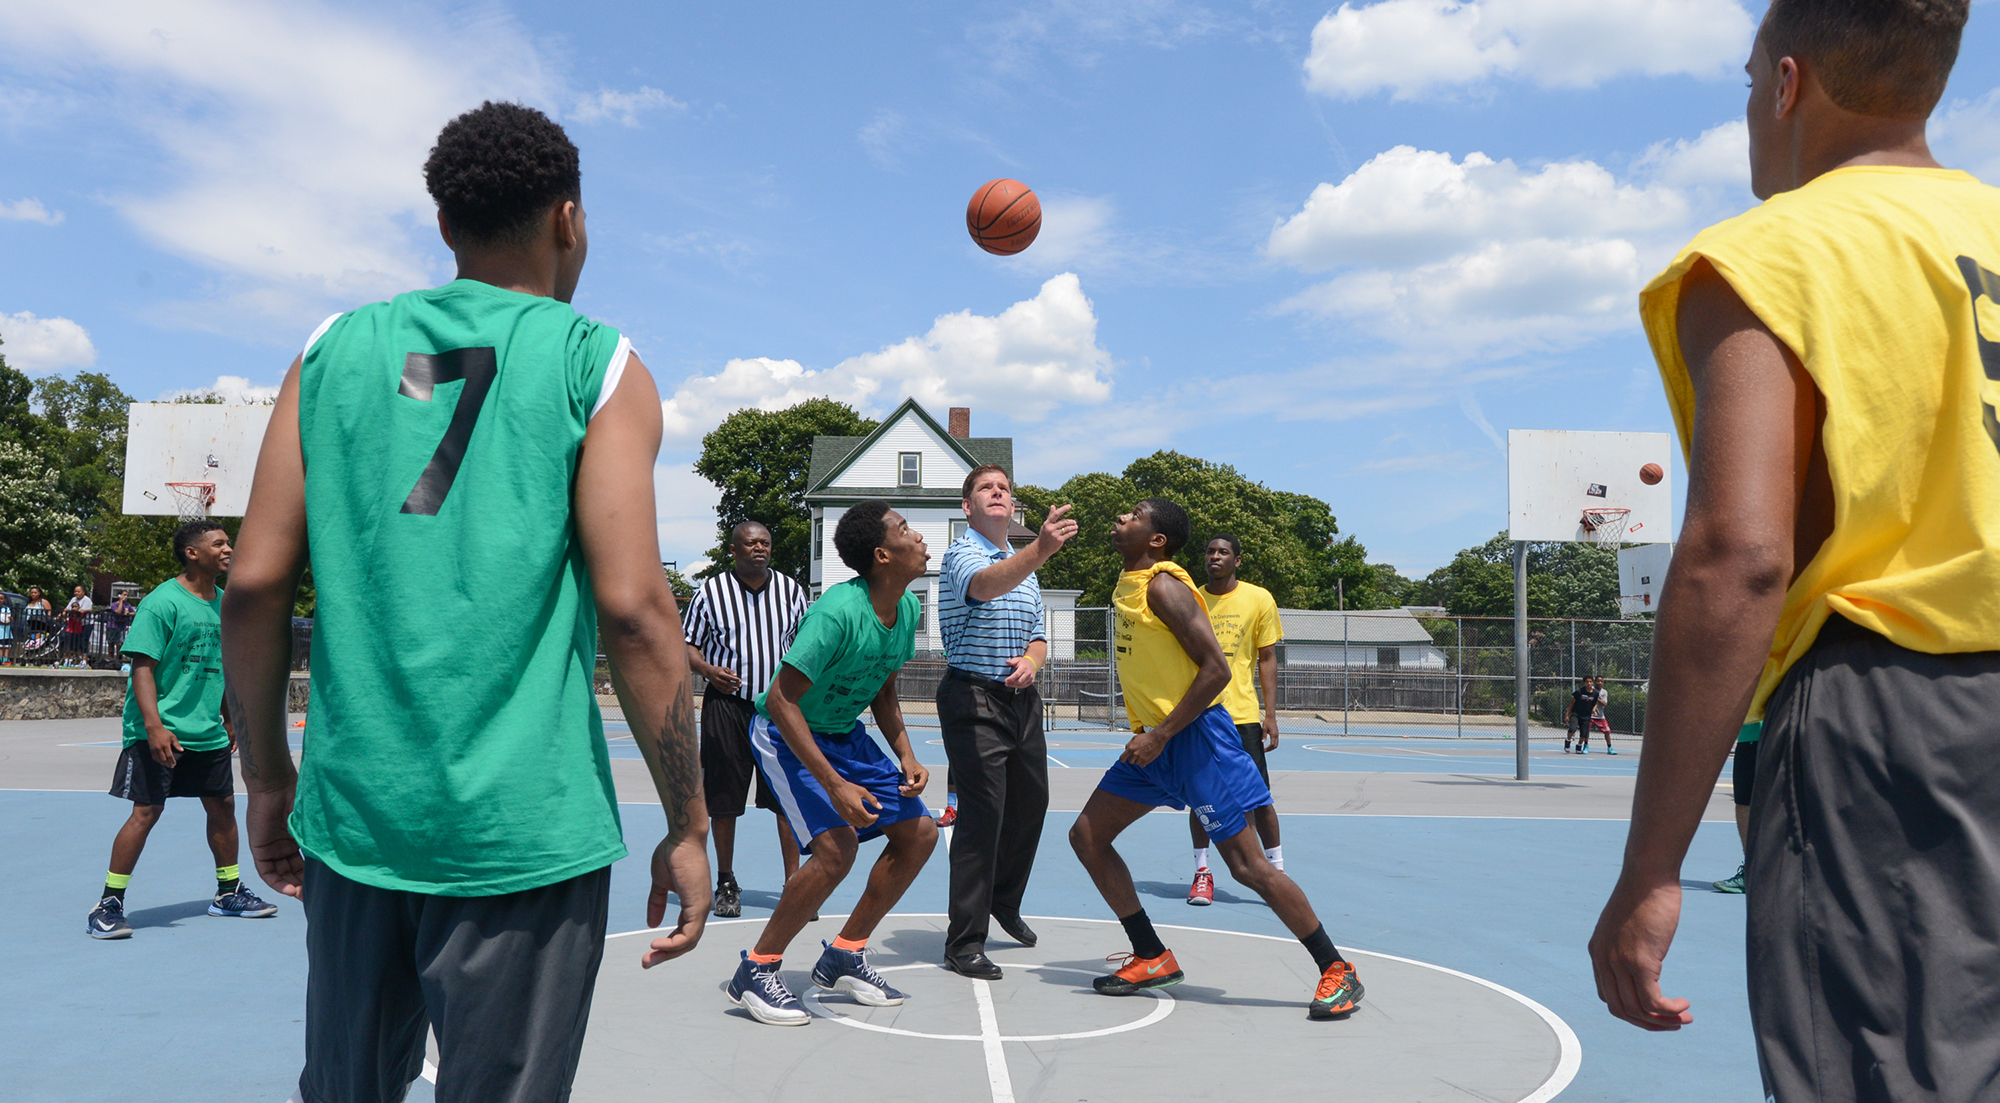 Image for mayor walsh throws the opening tip off for the 2014 youth in crisis scoops for hoops event in mattapan